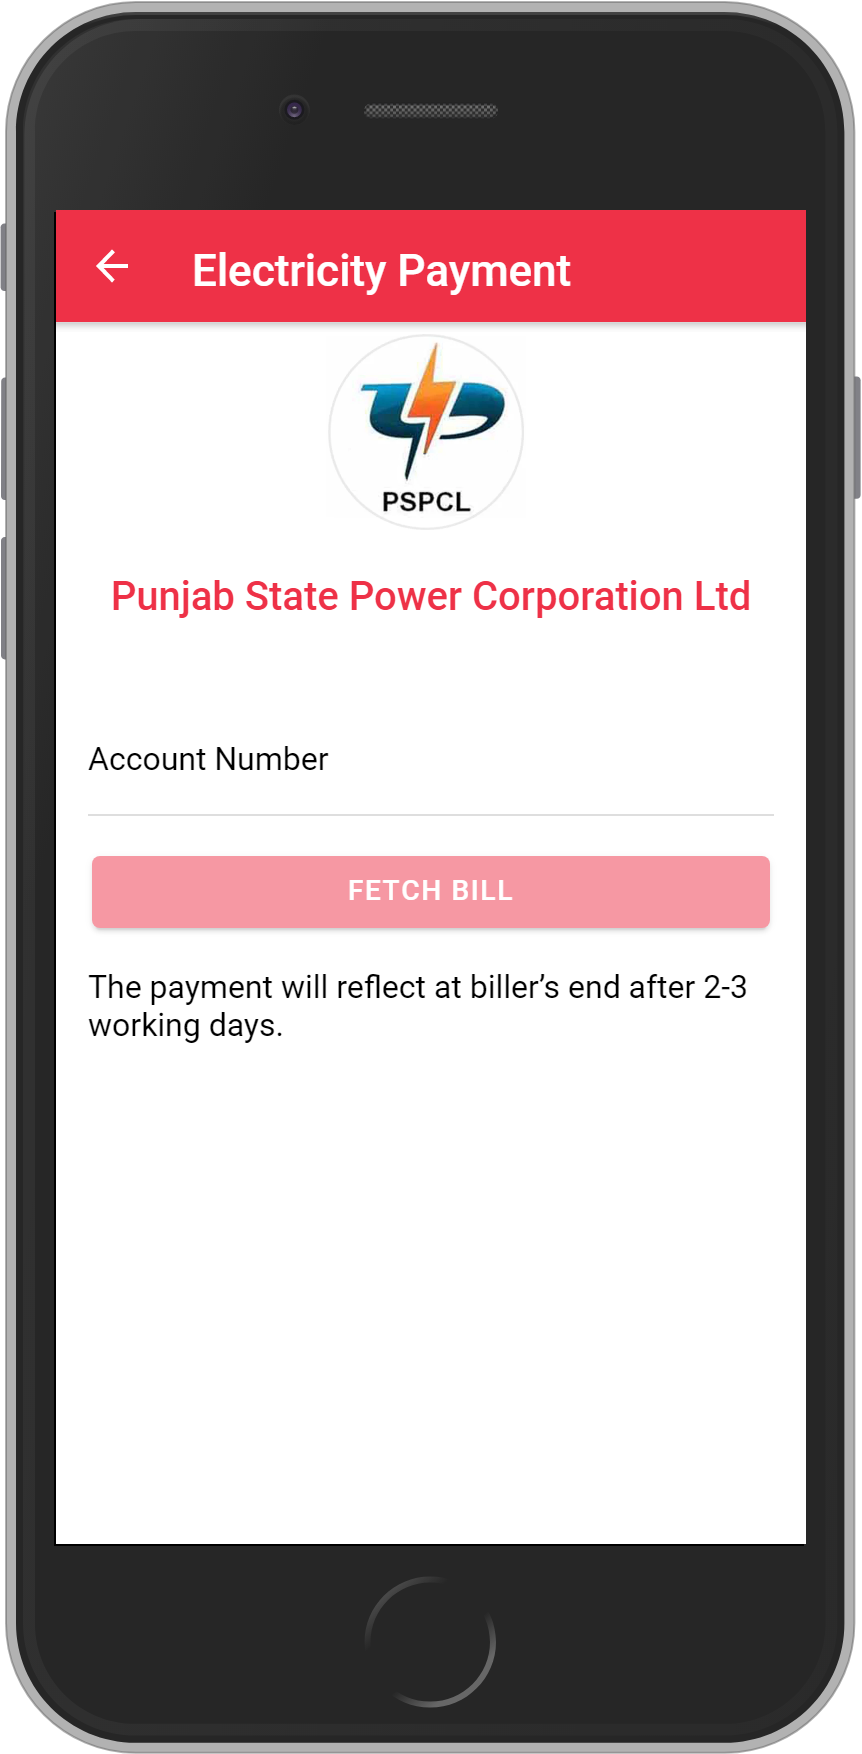 Get UNLIMITED <b>0.1%</b> CASHBACK on Punjab State Power Corporation Ltd Bill Payment.